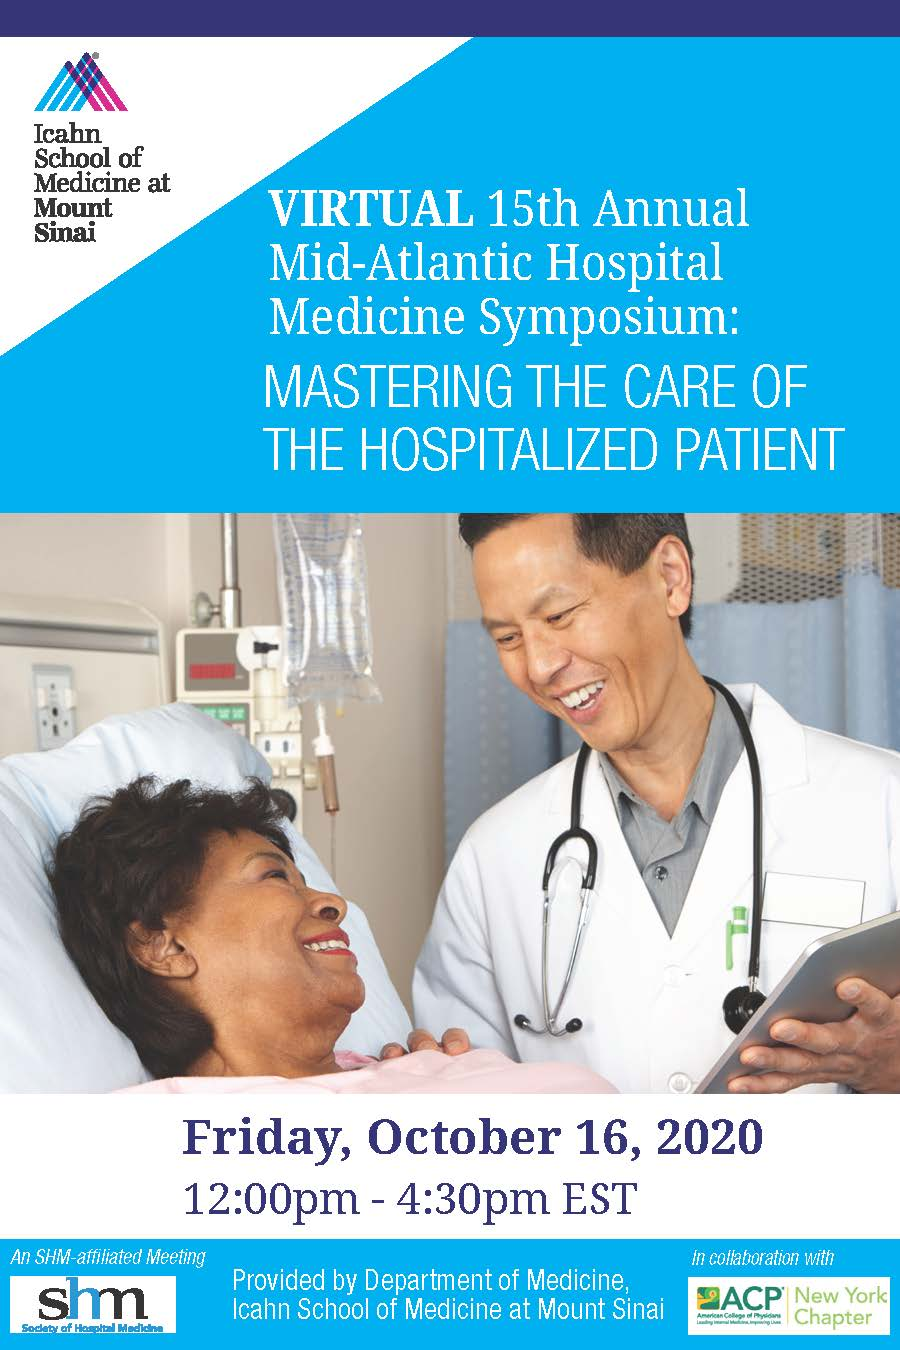 Virtual 15th Annual Mid-Atlantic Hospital Medicine Symposium Banner